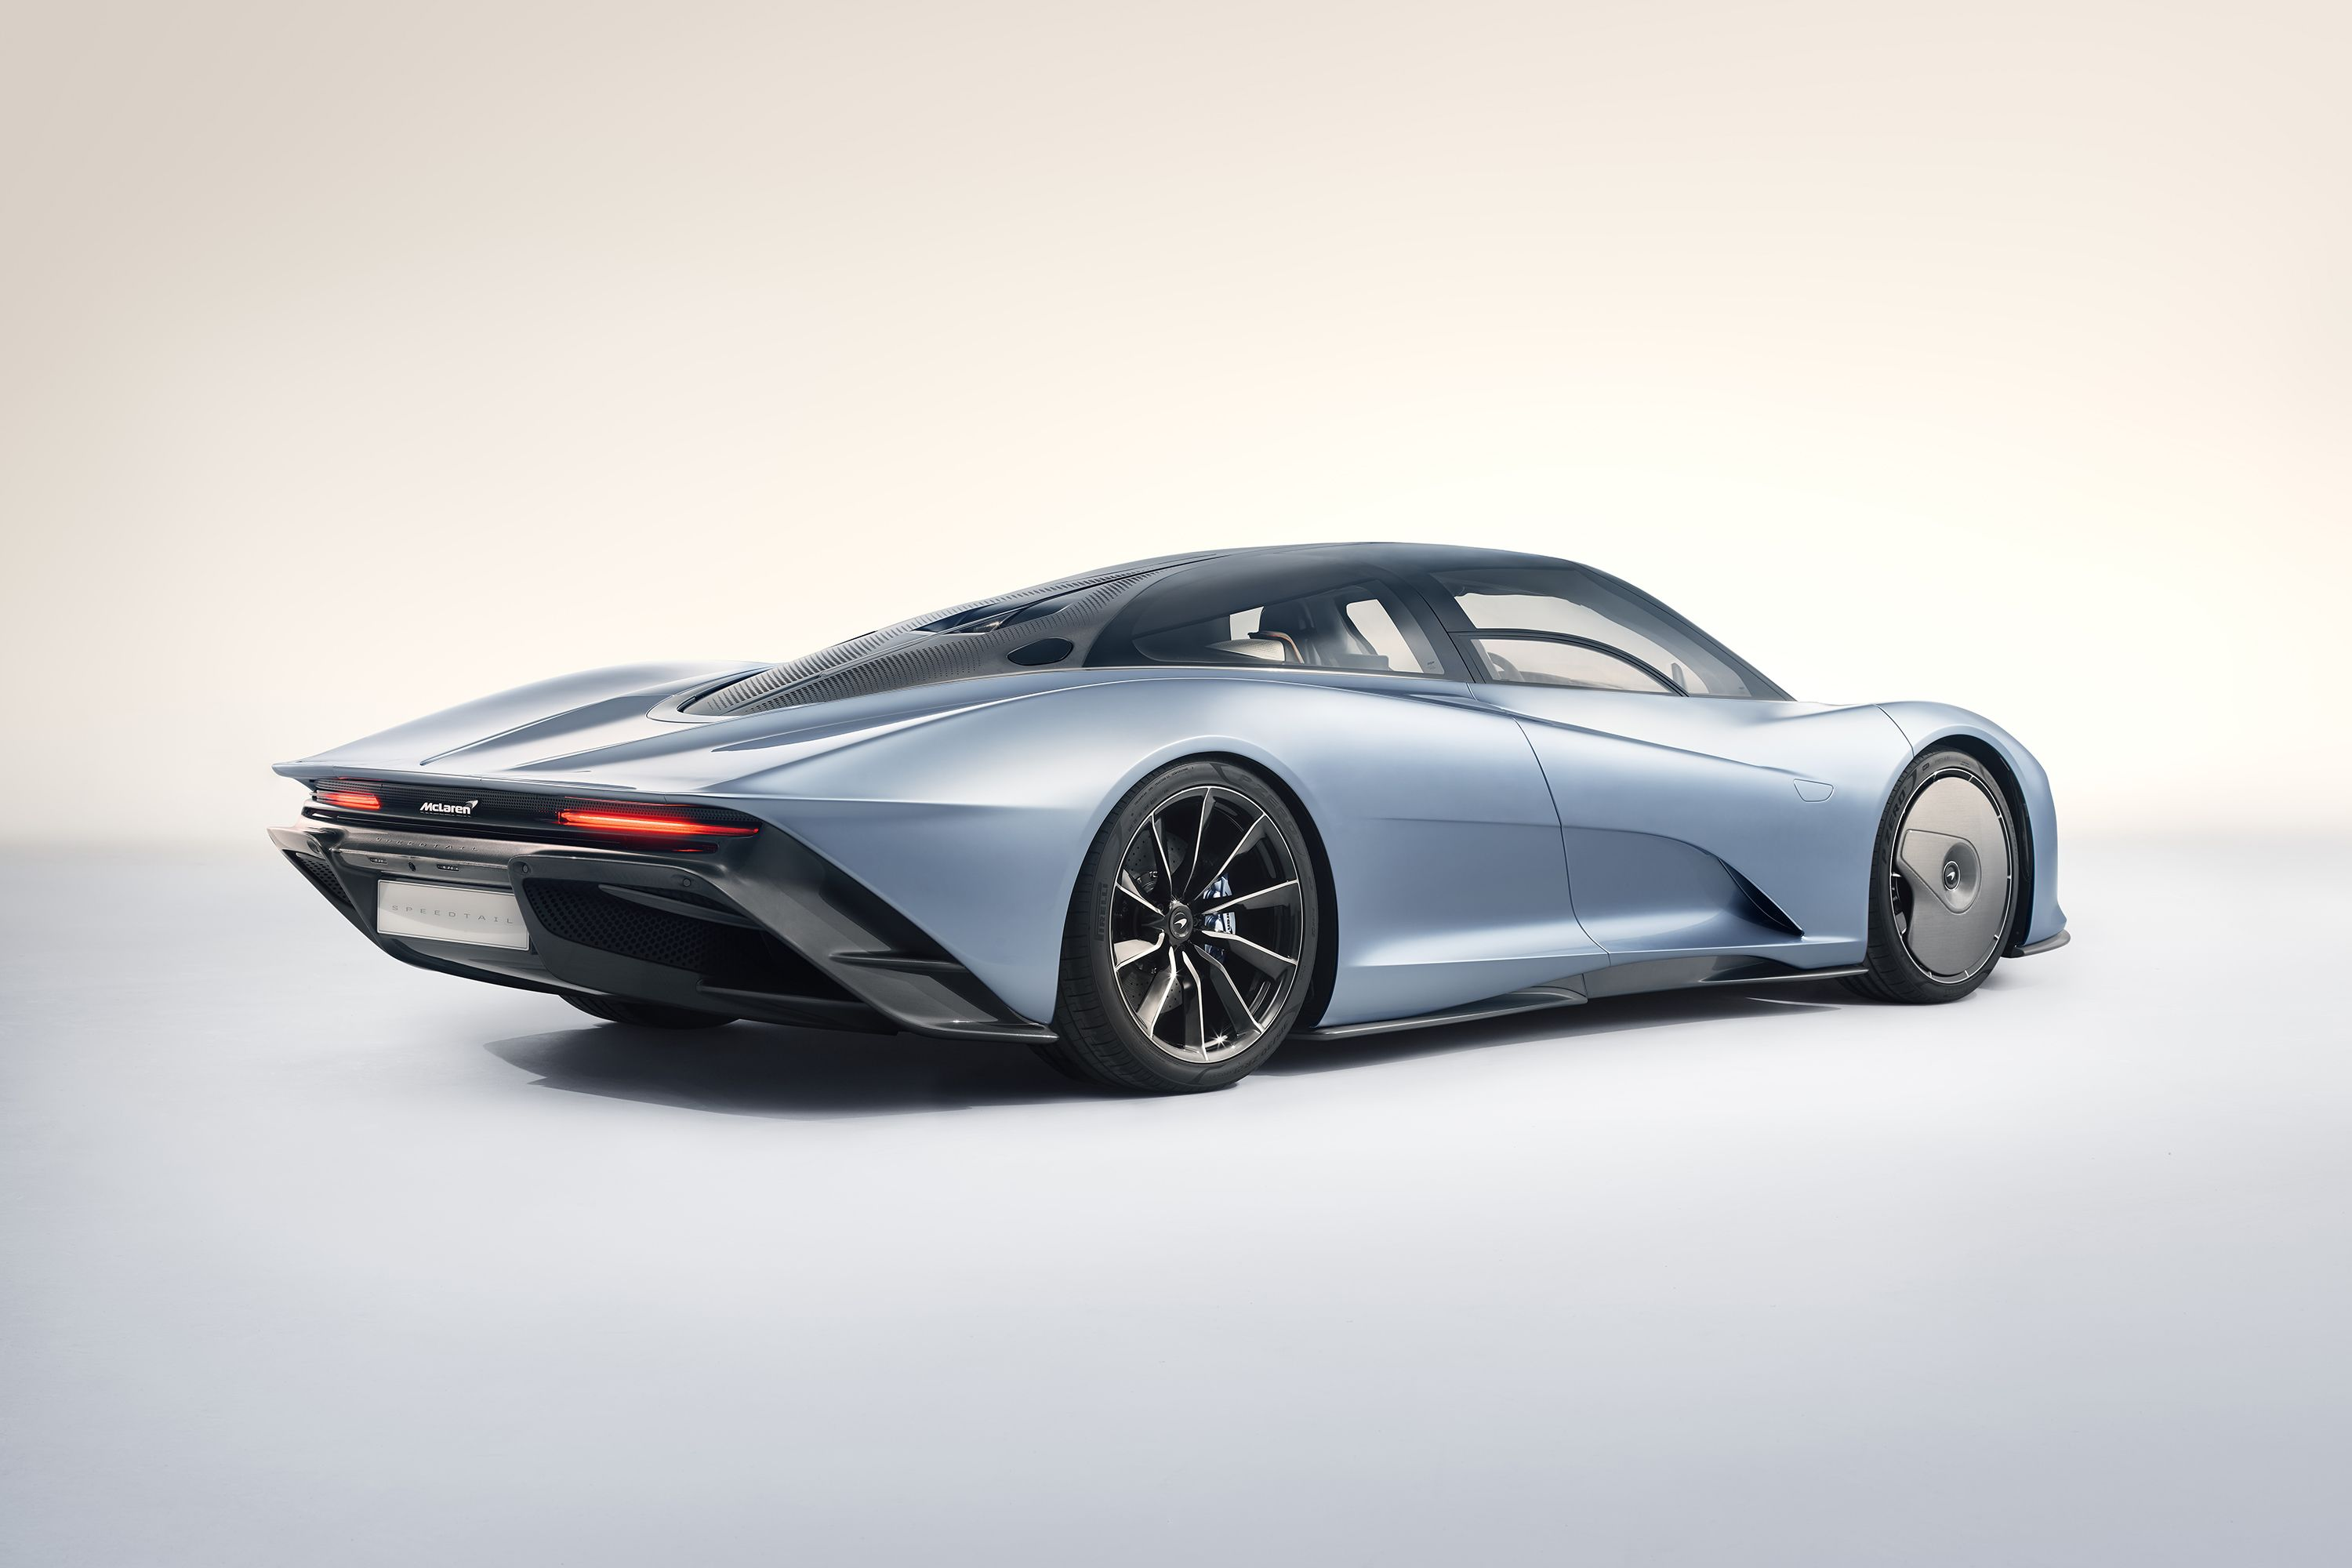 The Fastest Car In The World 2015 >> The Fastest Cars In The World For 2019